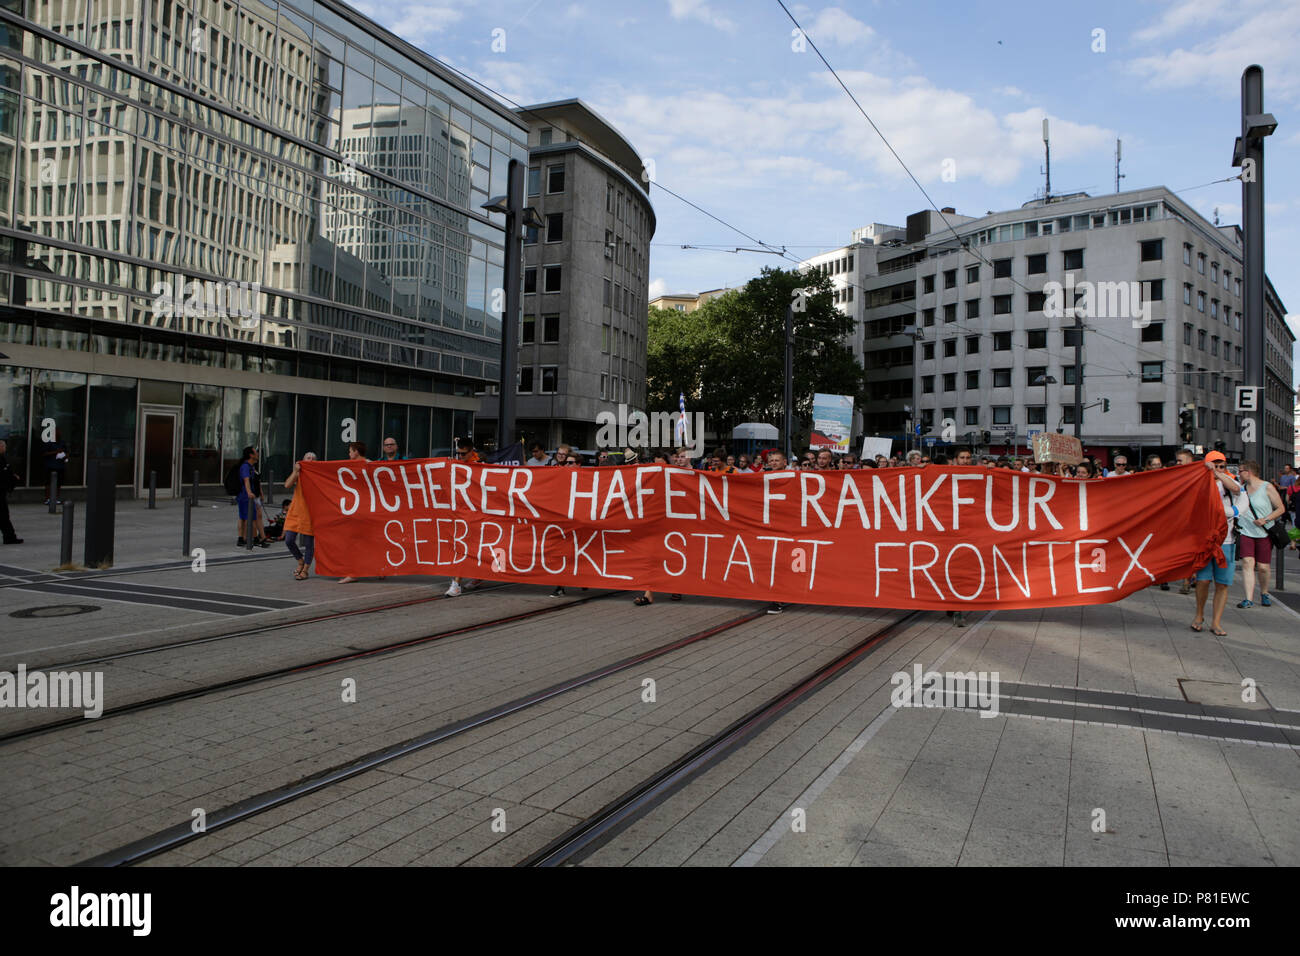 Frankfurt, Germany. 07th July, 2018. Protesters carry a banner that reads 'Safe haven Frankfurt - Seebrucke (Sea bridge) instead of FRONTEX' through Frankfurt. Around 800 protesters marched through Frankfurt to protest against the politics of the German government and the EU of closed borders and the prevention of sea rescue operations of NGOs, by grounding their ships in Malta, that causes refugees to drown in the Mediterranean. They called for the Mayor of Frankfurt to declare Frankfurt a safe haven city for refugees from the Mediterranean. The protest was part of the German wide Seebrucke ( Stock Photo